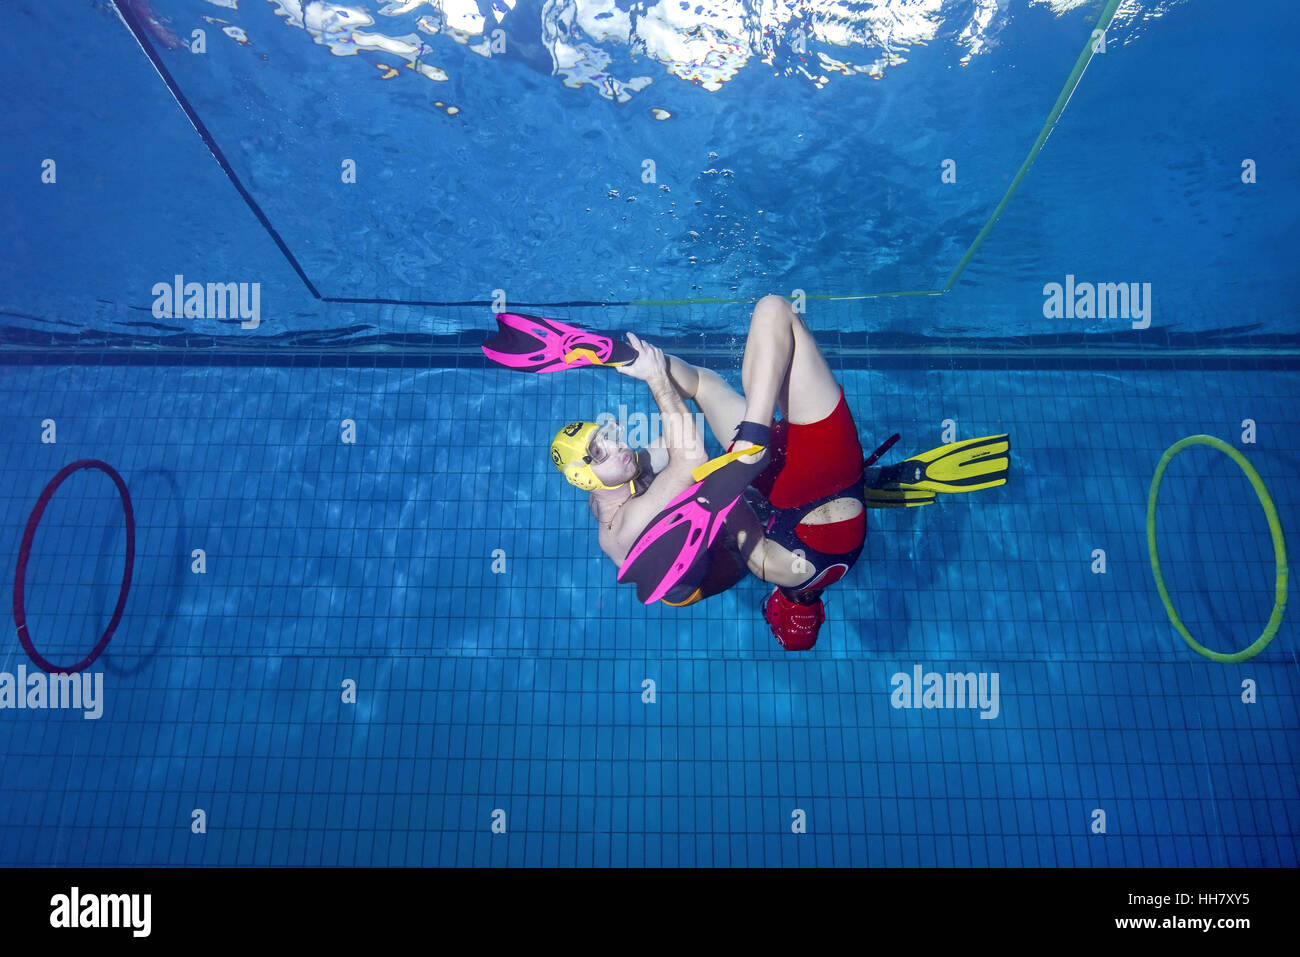 Nikolaev, Ukraine. 15th Jan, 2017. Aquathlon (underwater wrestling) Swimming pool, Nikolaev, Ukraine, Eastern Europe - Stock Image